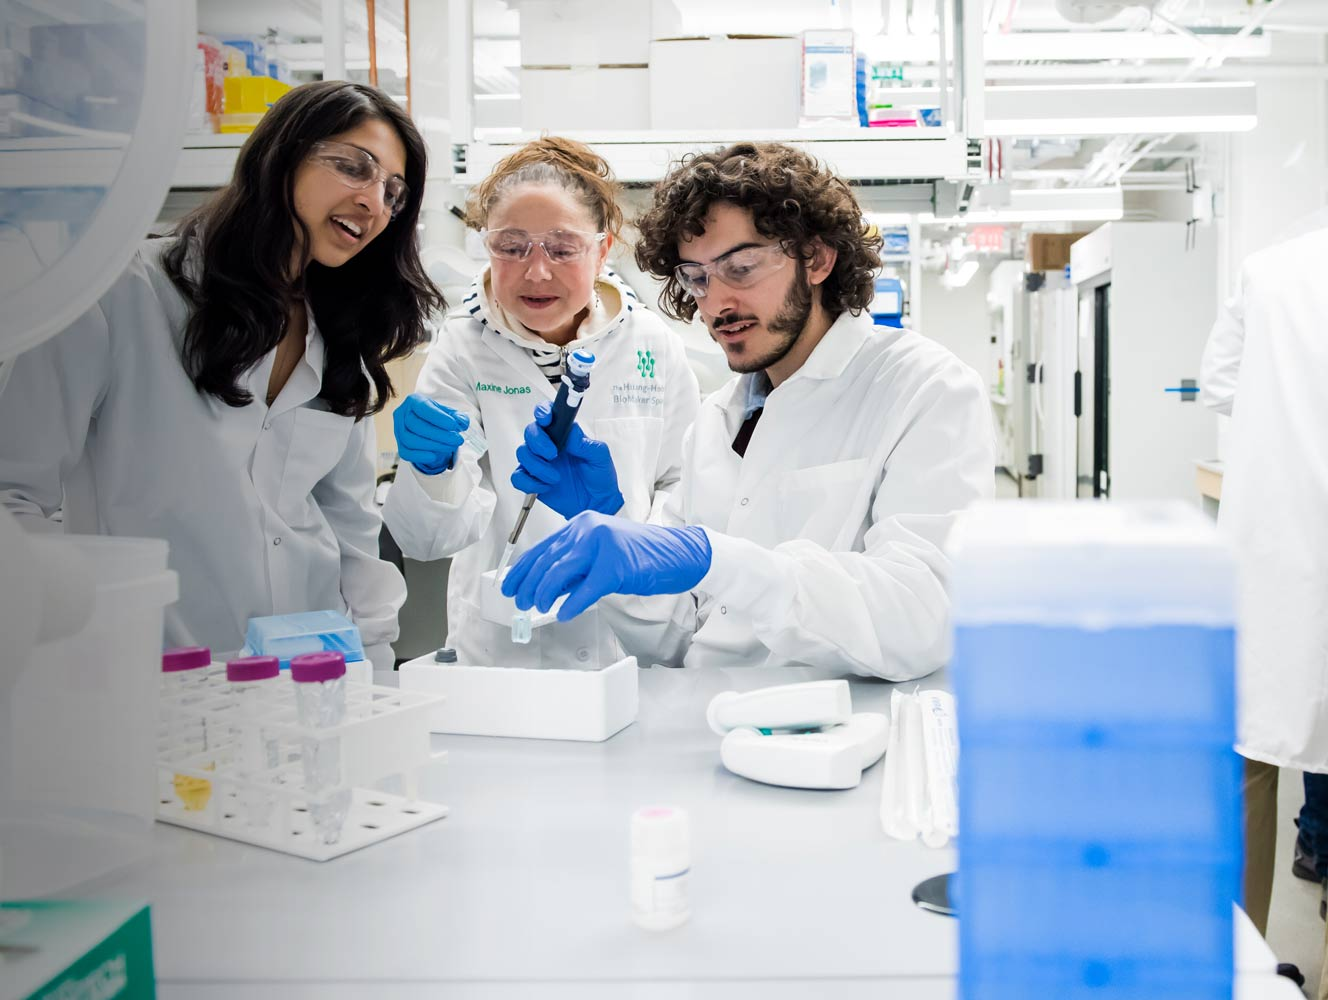 Image of students and an MIT professor in a the lab.